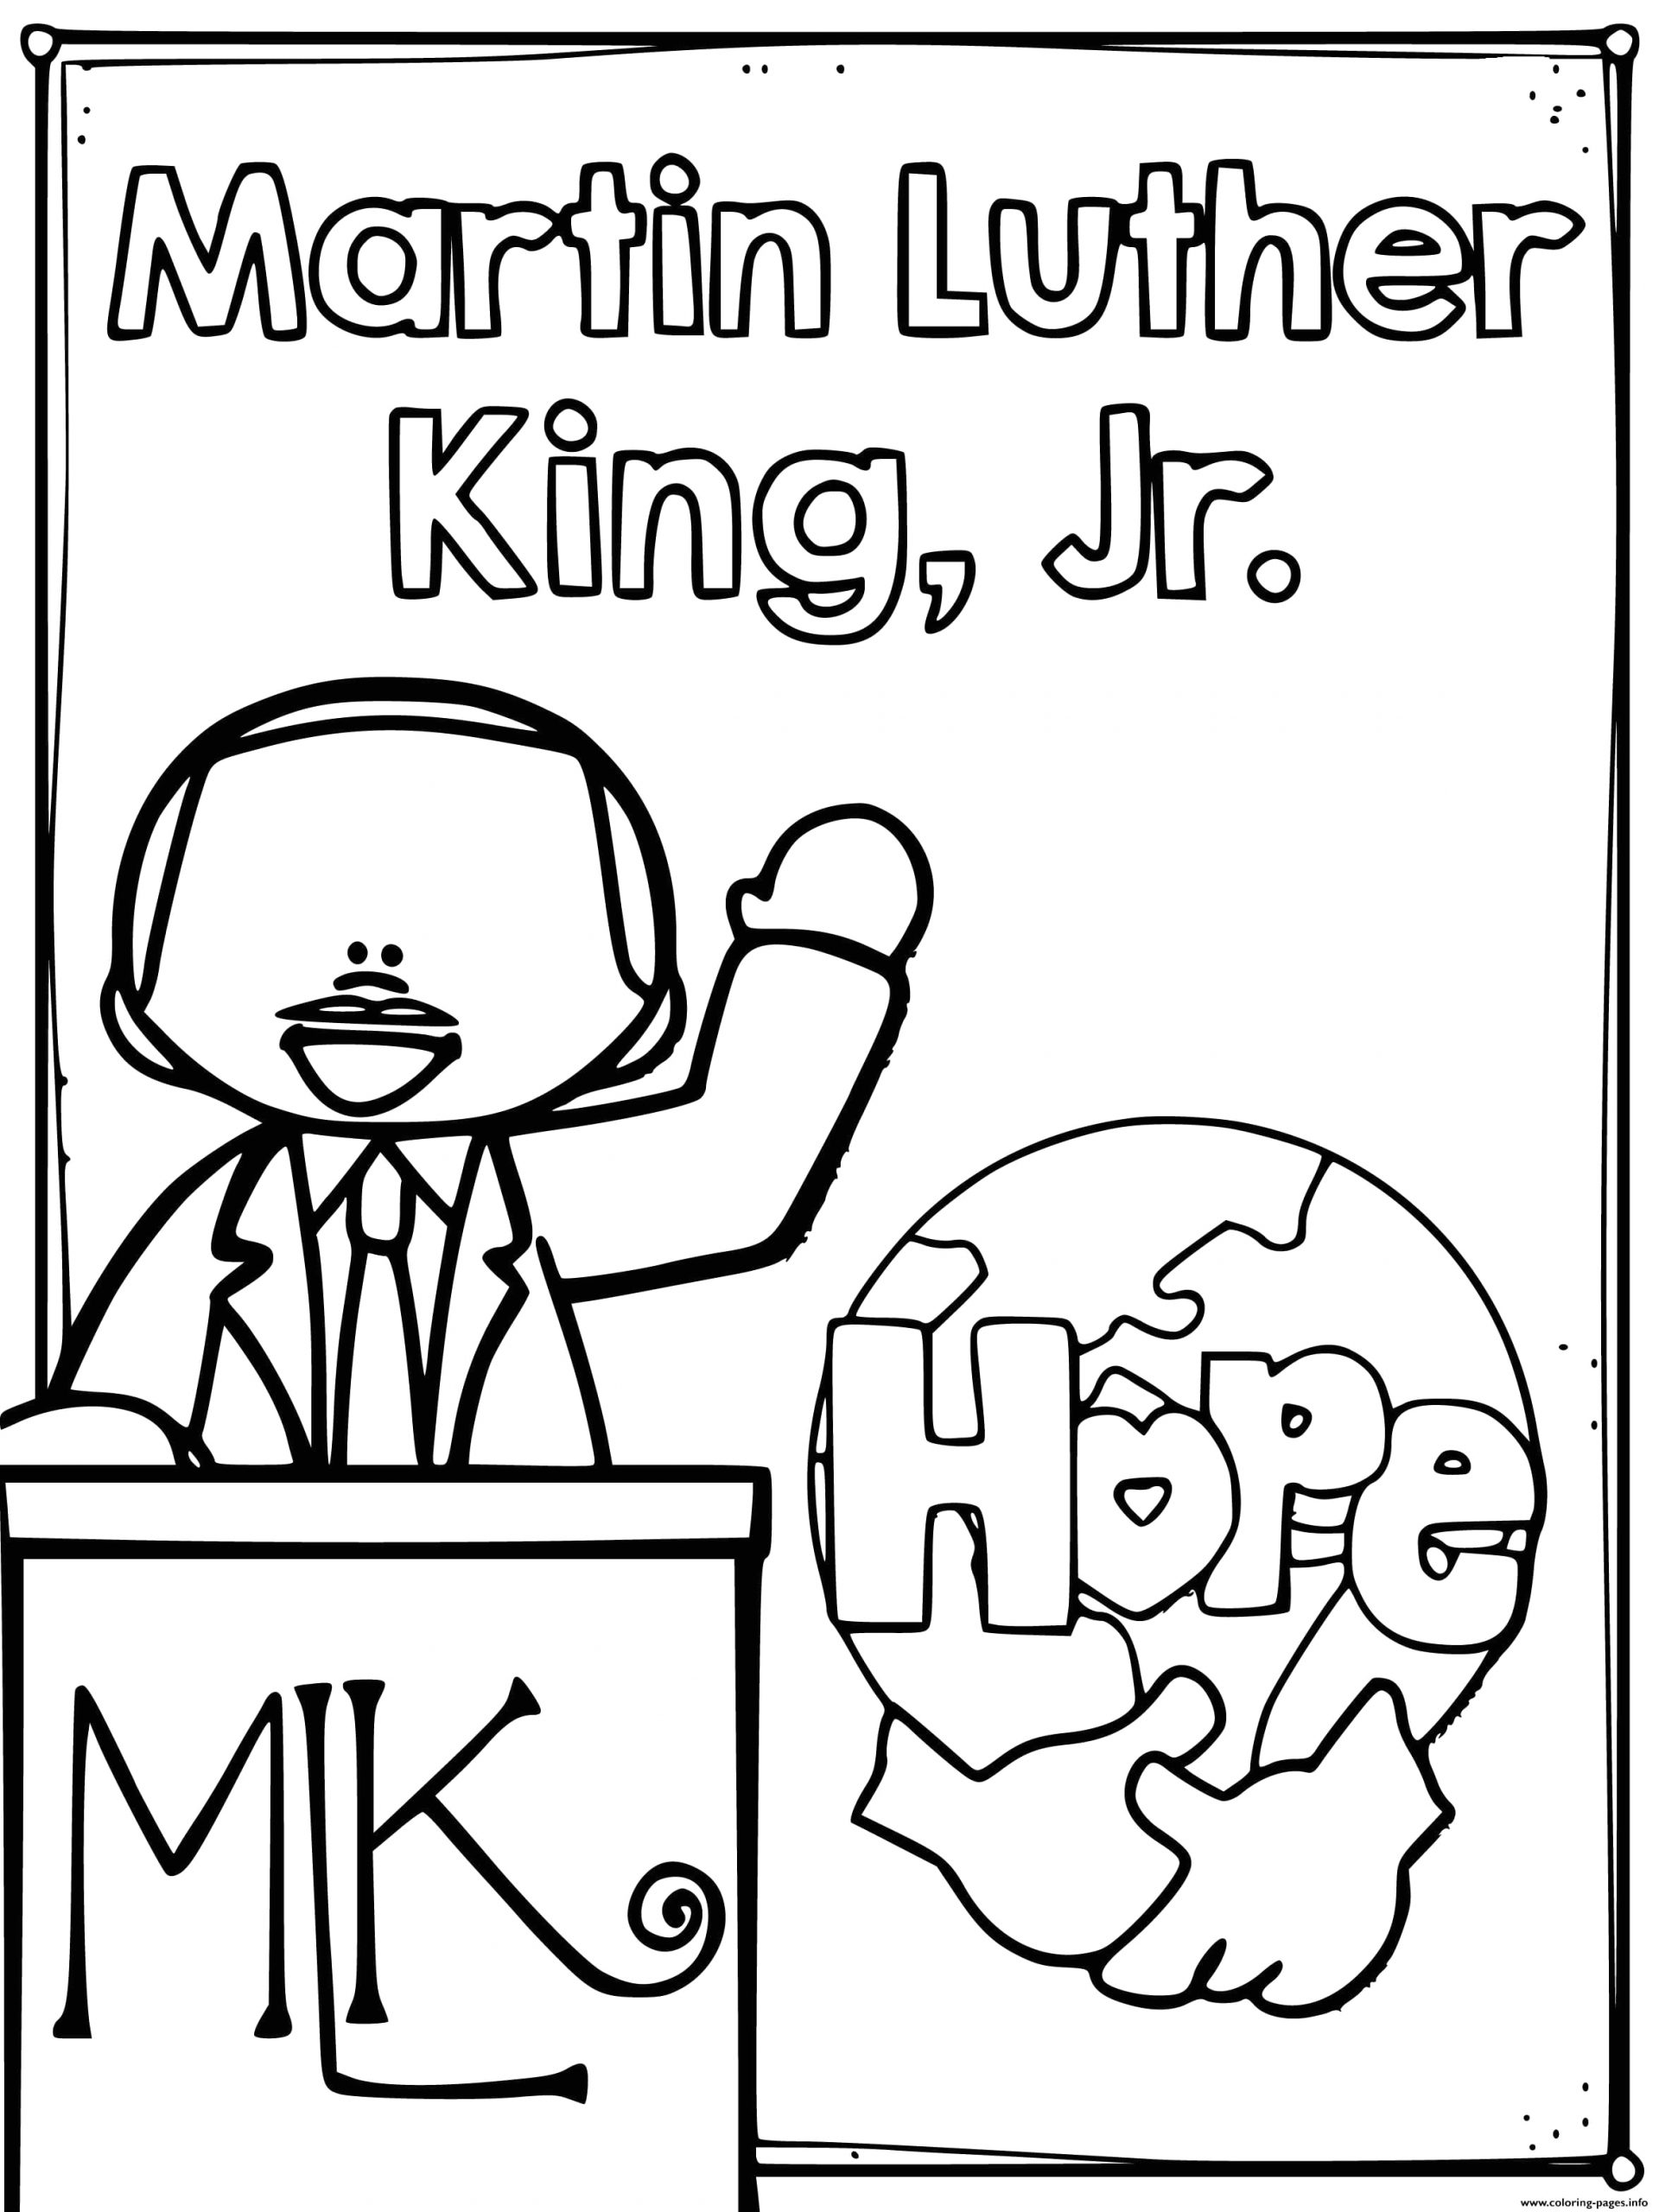 Martin Luther King Jr Coloring Pages Kindergarten Martin Luther King Jr Day Coloring Pages Print for Free